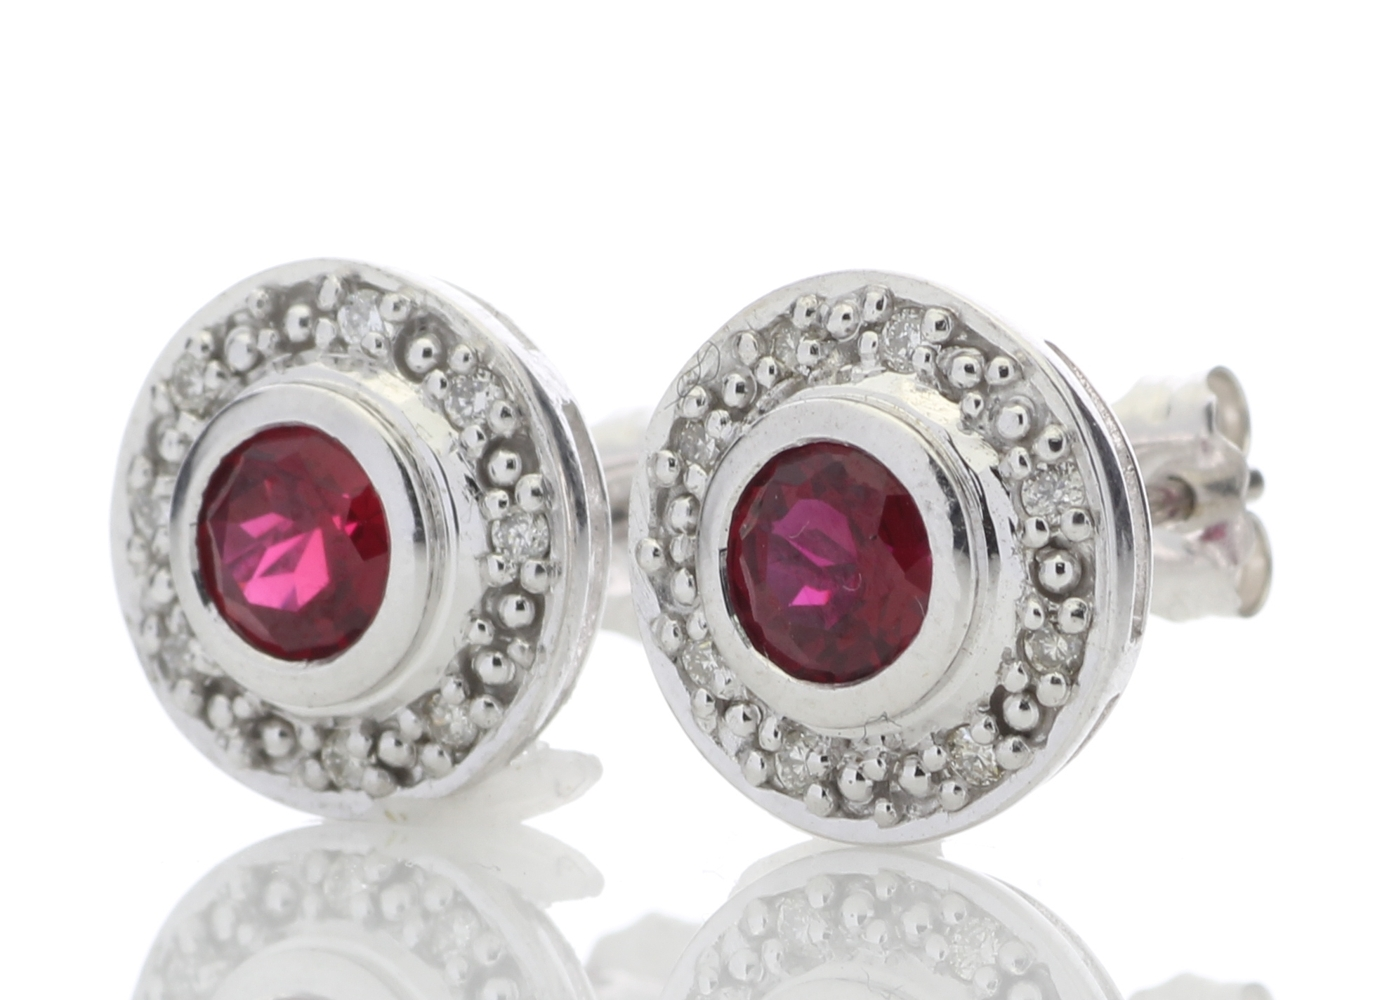 Lot 60 - 9ct White Gold Created Ruby Diamond Earring 0.16 Carats